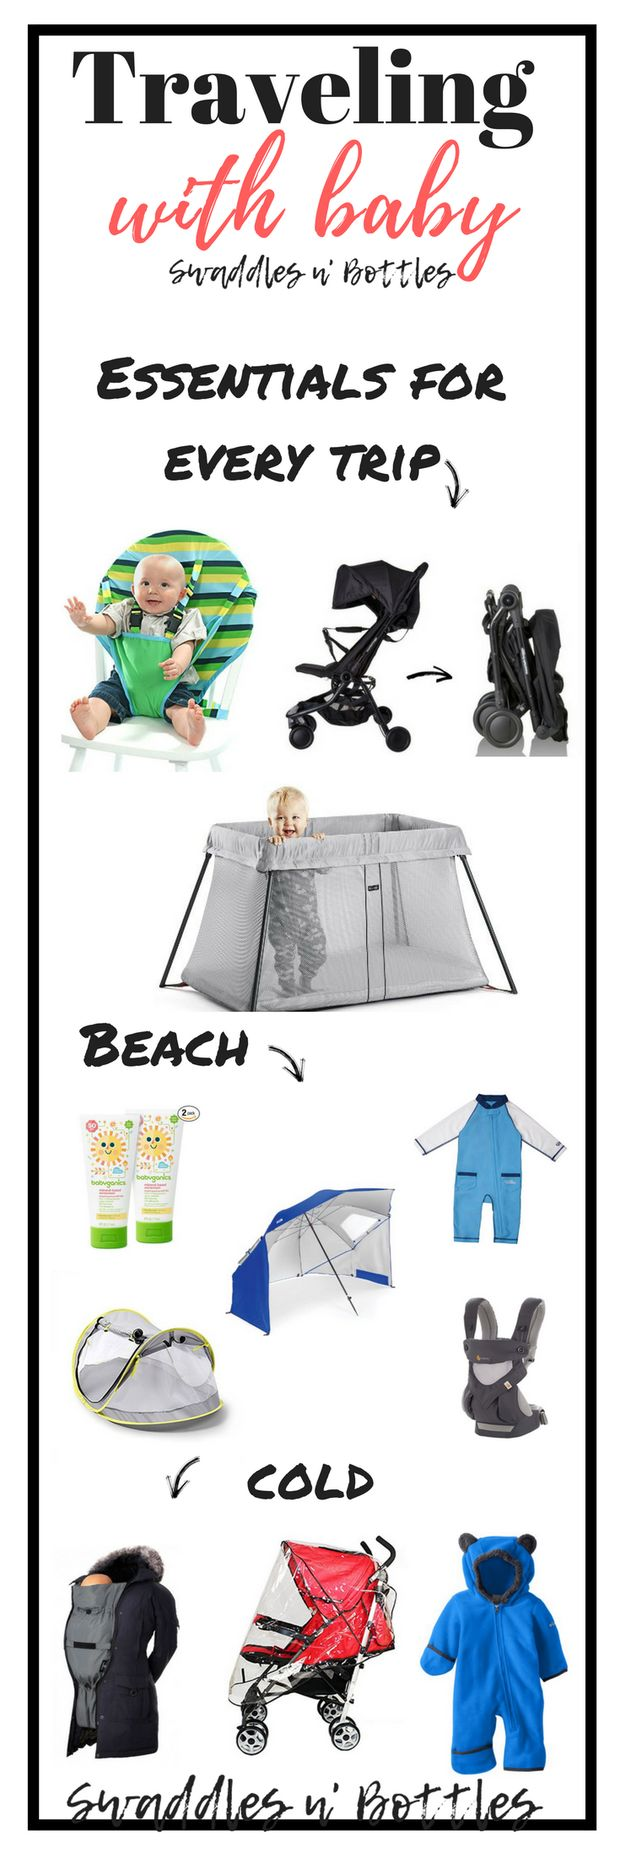 Traveling with Baby- A Complete List of the BEST Gear for Any Trip! | Baby Travel Cot | Stroller | Baby Carrier | Baby Beach Tent | Baby Travel High Chair |